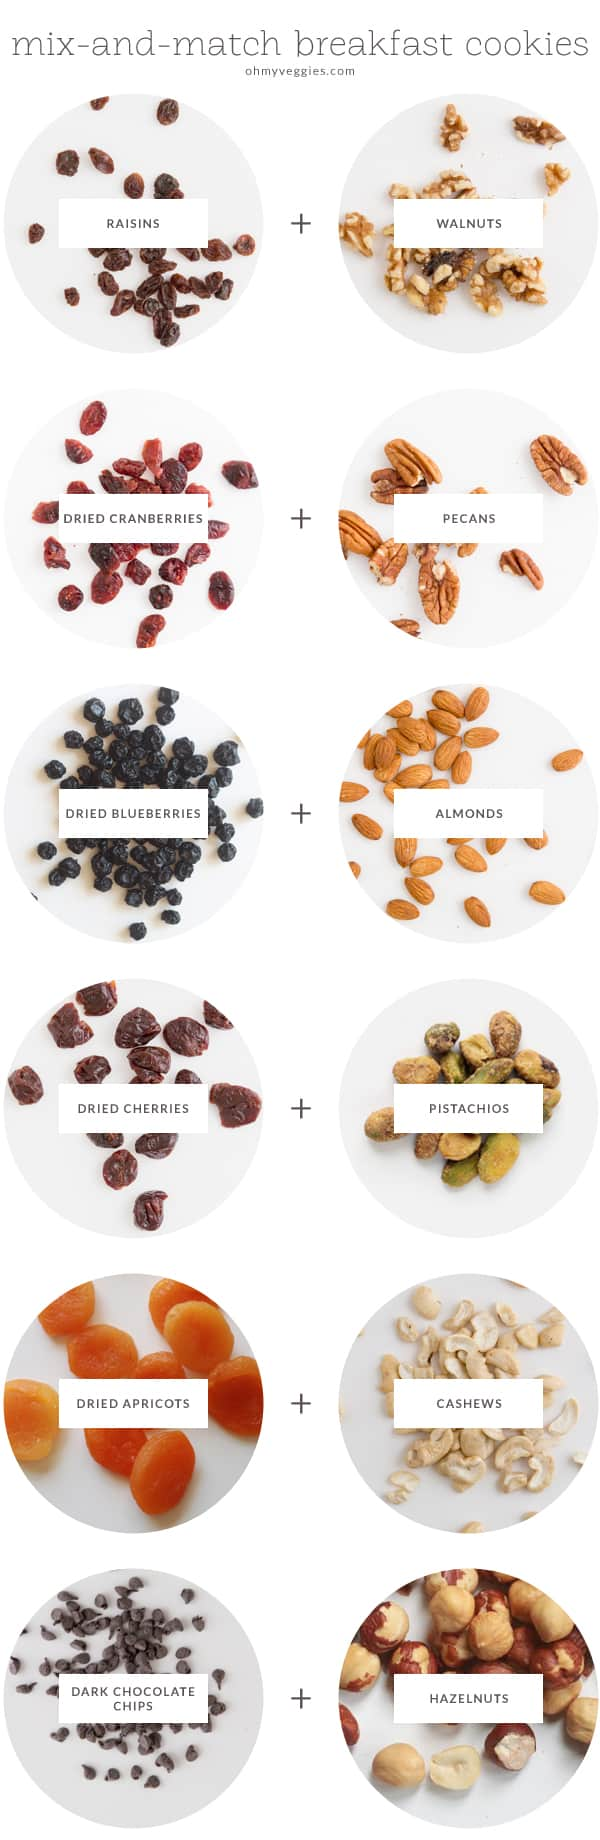 Mix & Match Breakfast Cookie Ingredients